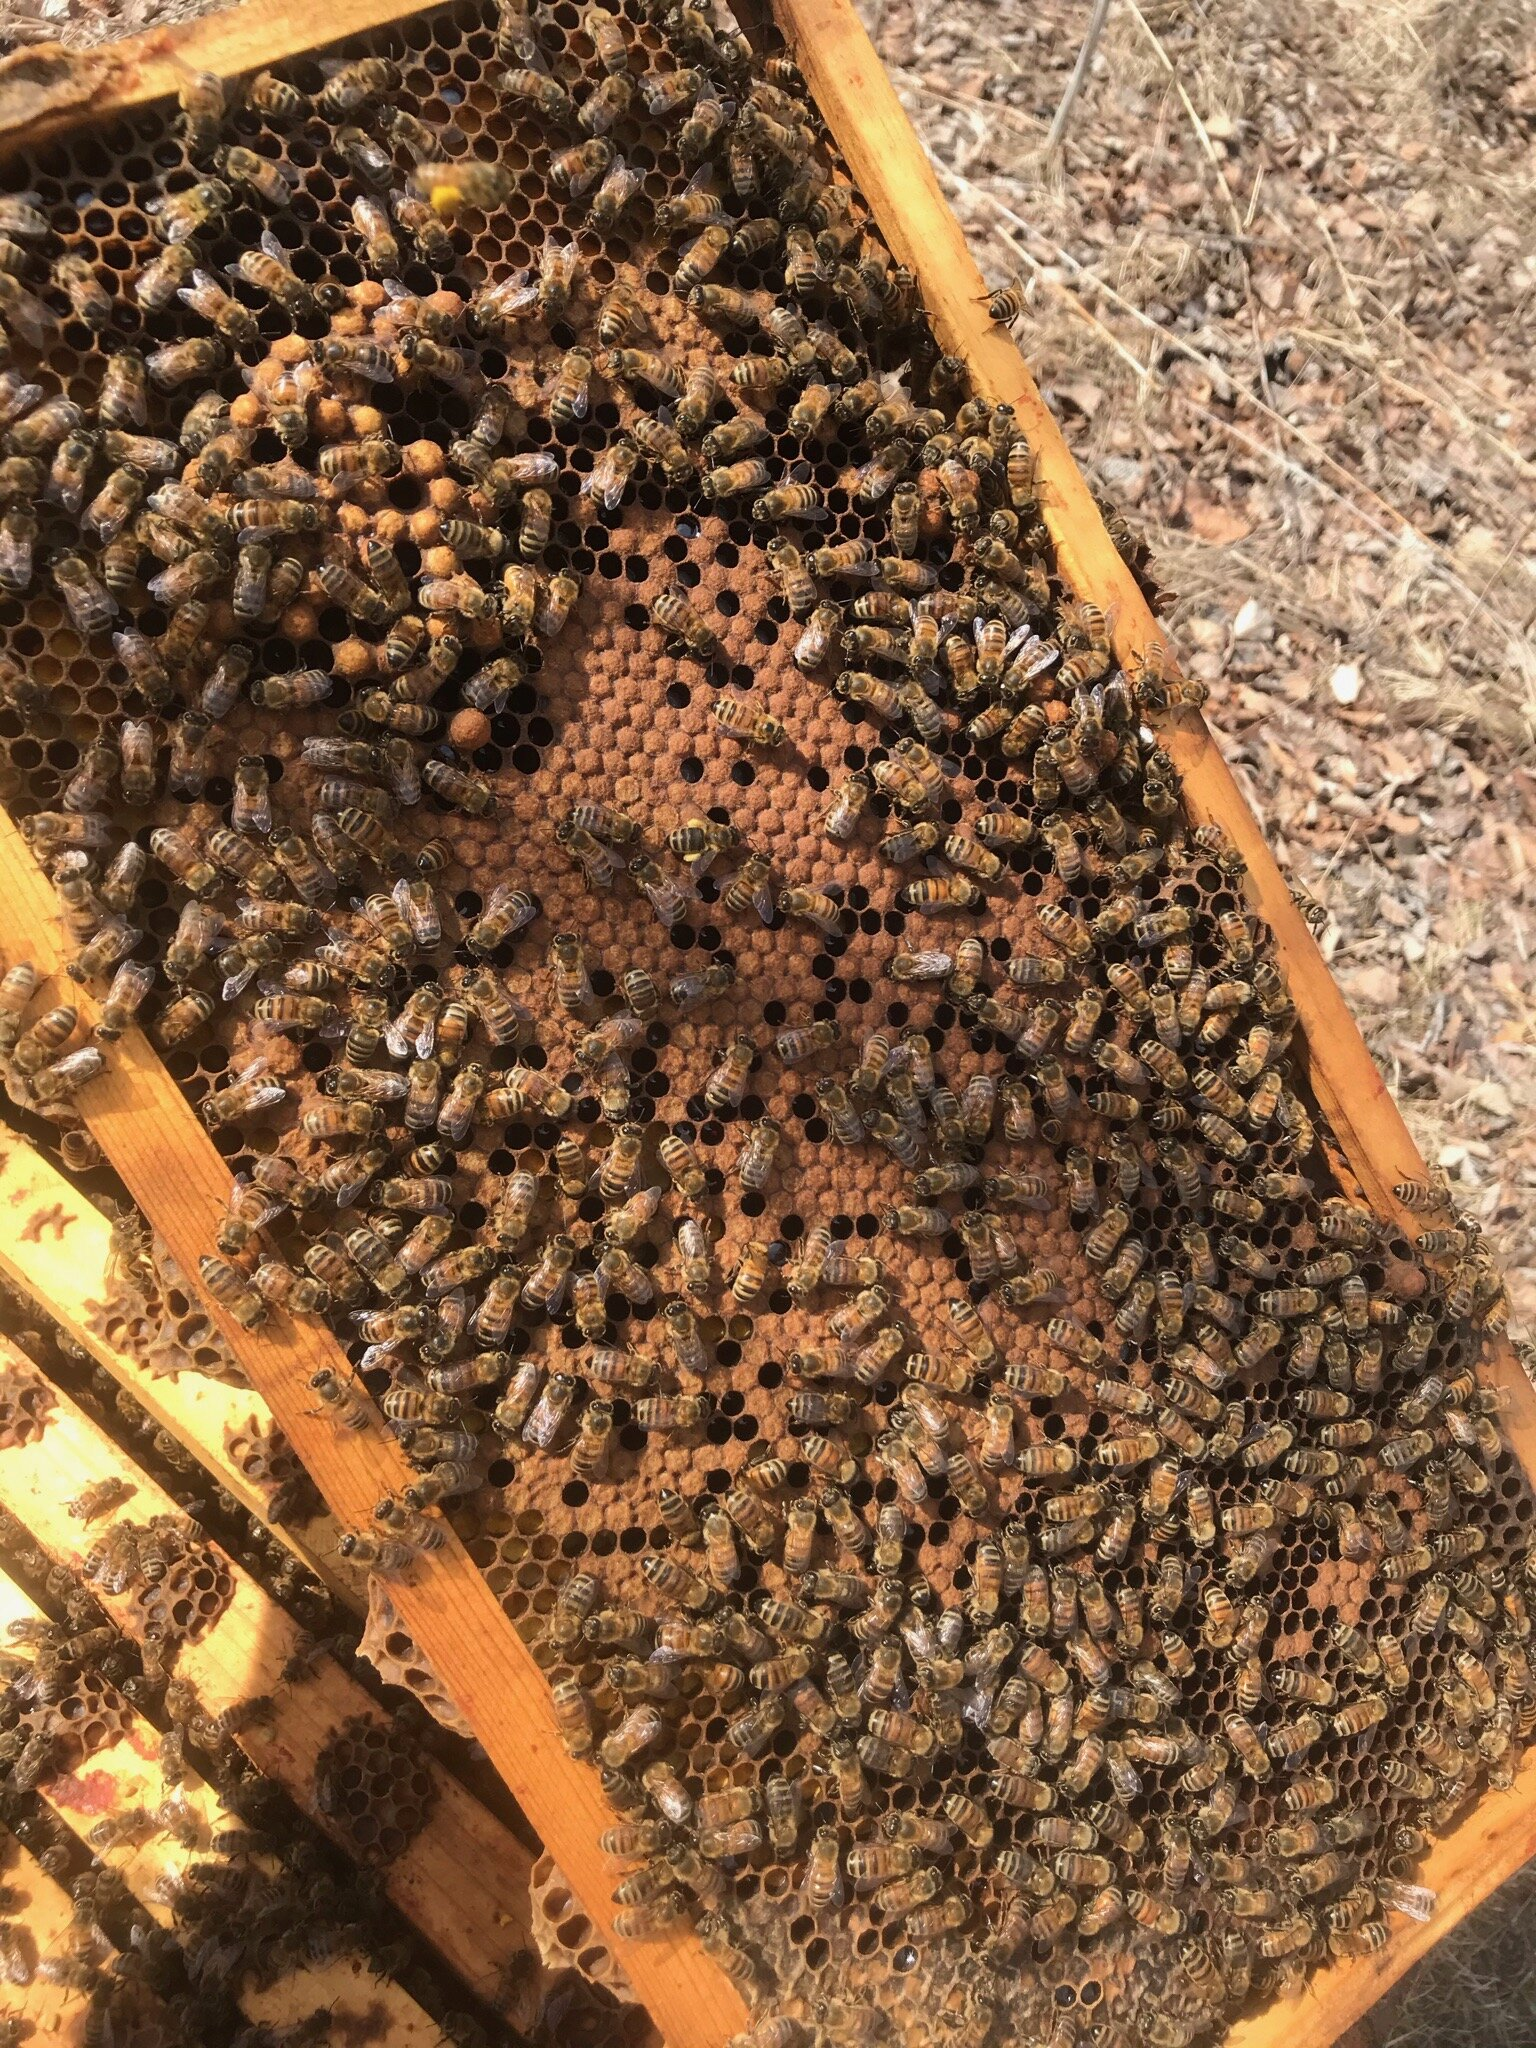 BEEing Born On The Same Day Makes Our Birthday Extra Sweet  Shared Birthday Same Day Birthday  bees honey honeybees honeycomb beekeeper